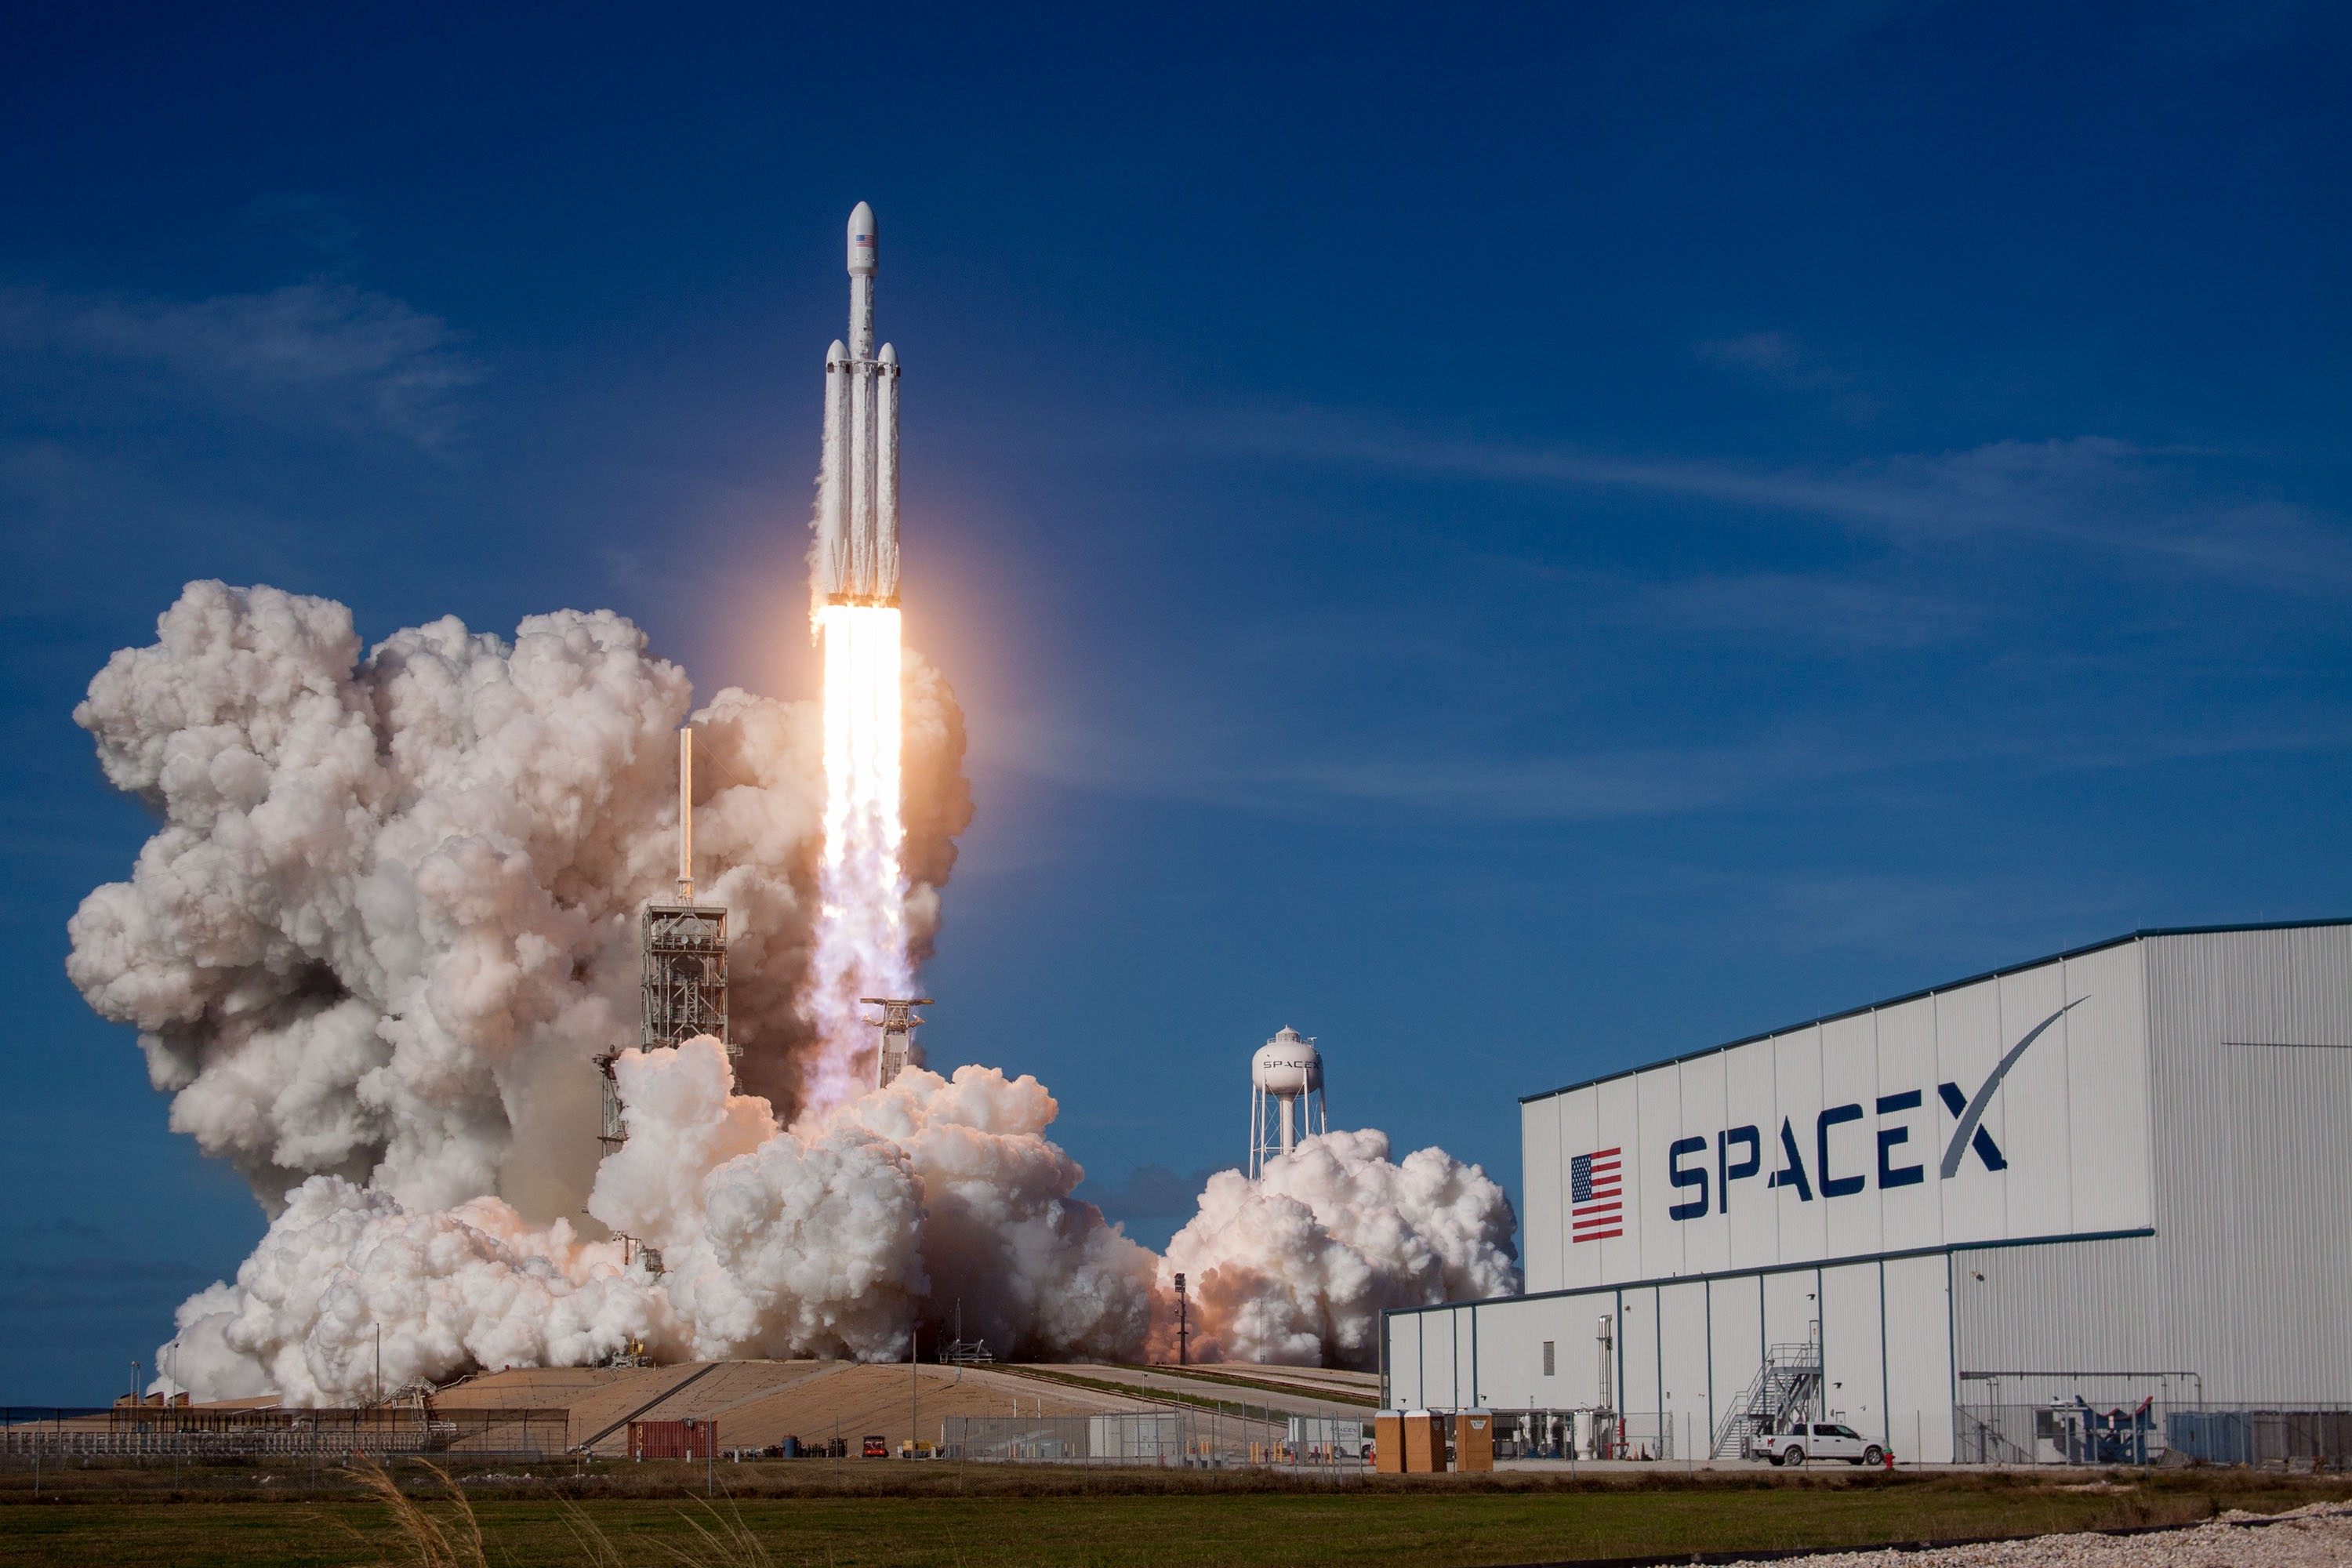 How Spacex Makes Money